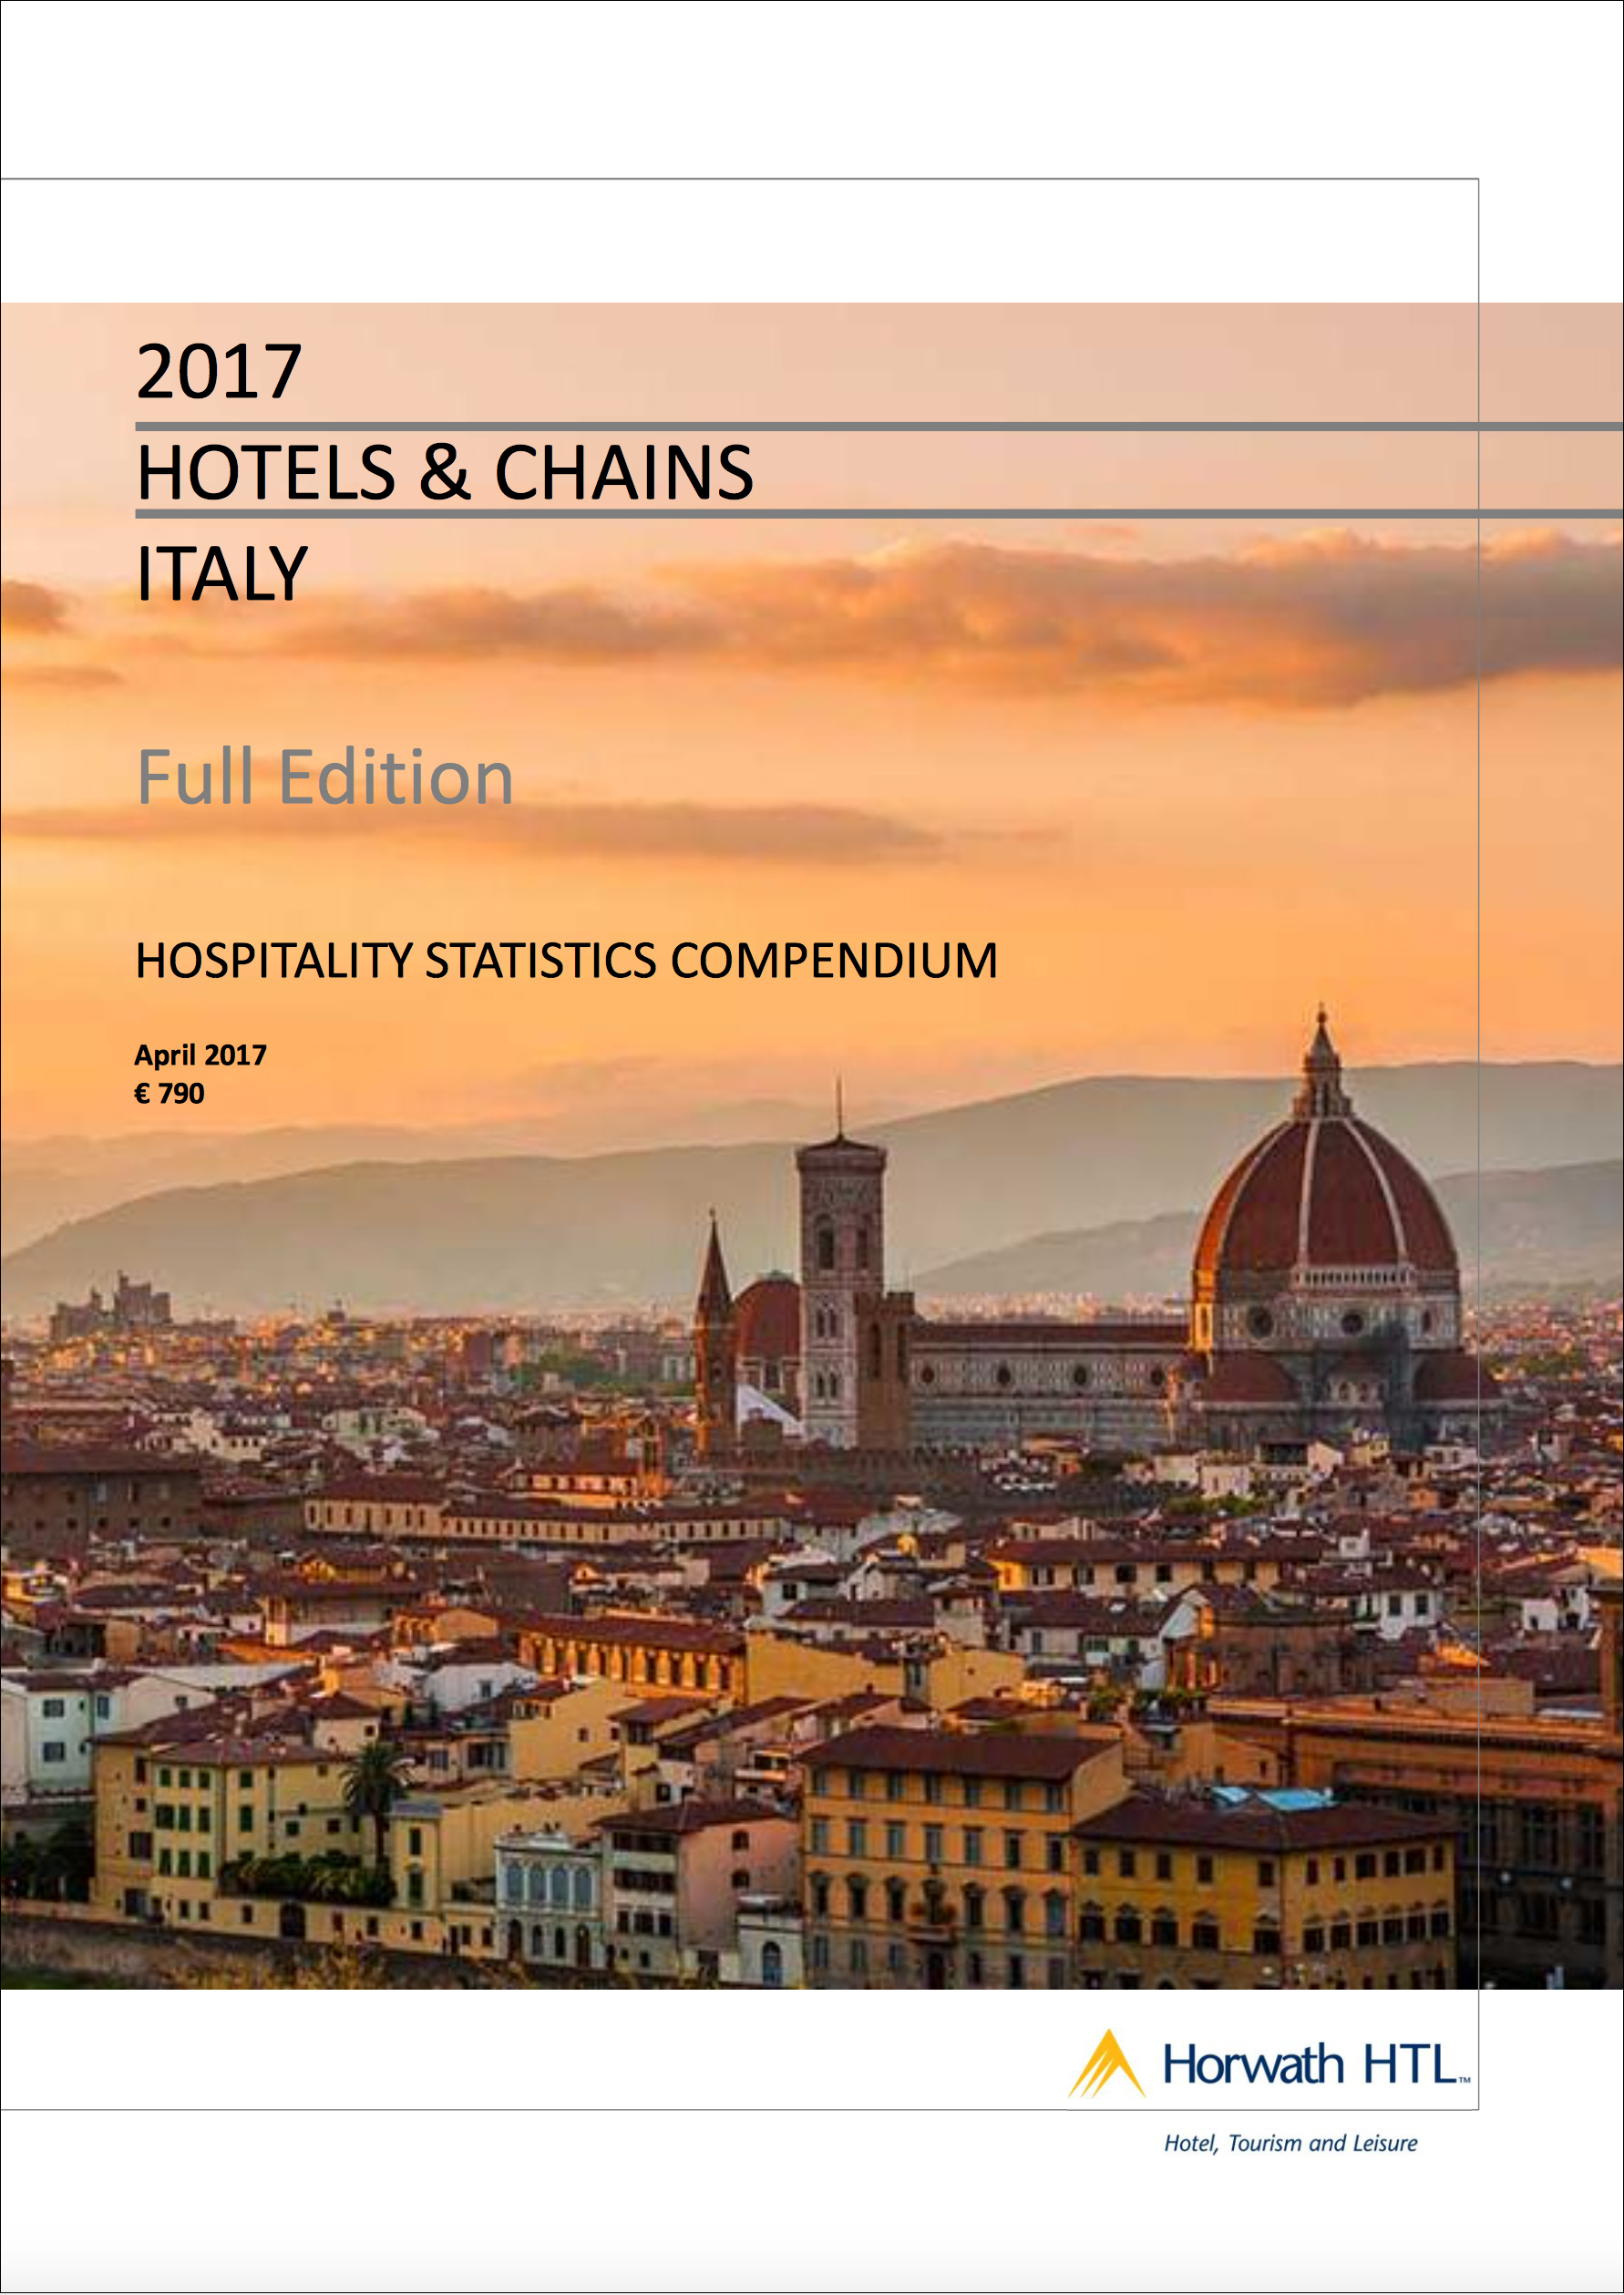 Italy Hotels & Chains Report 2017 – Full Edition